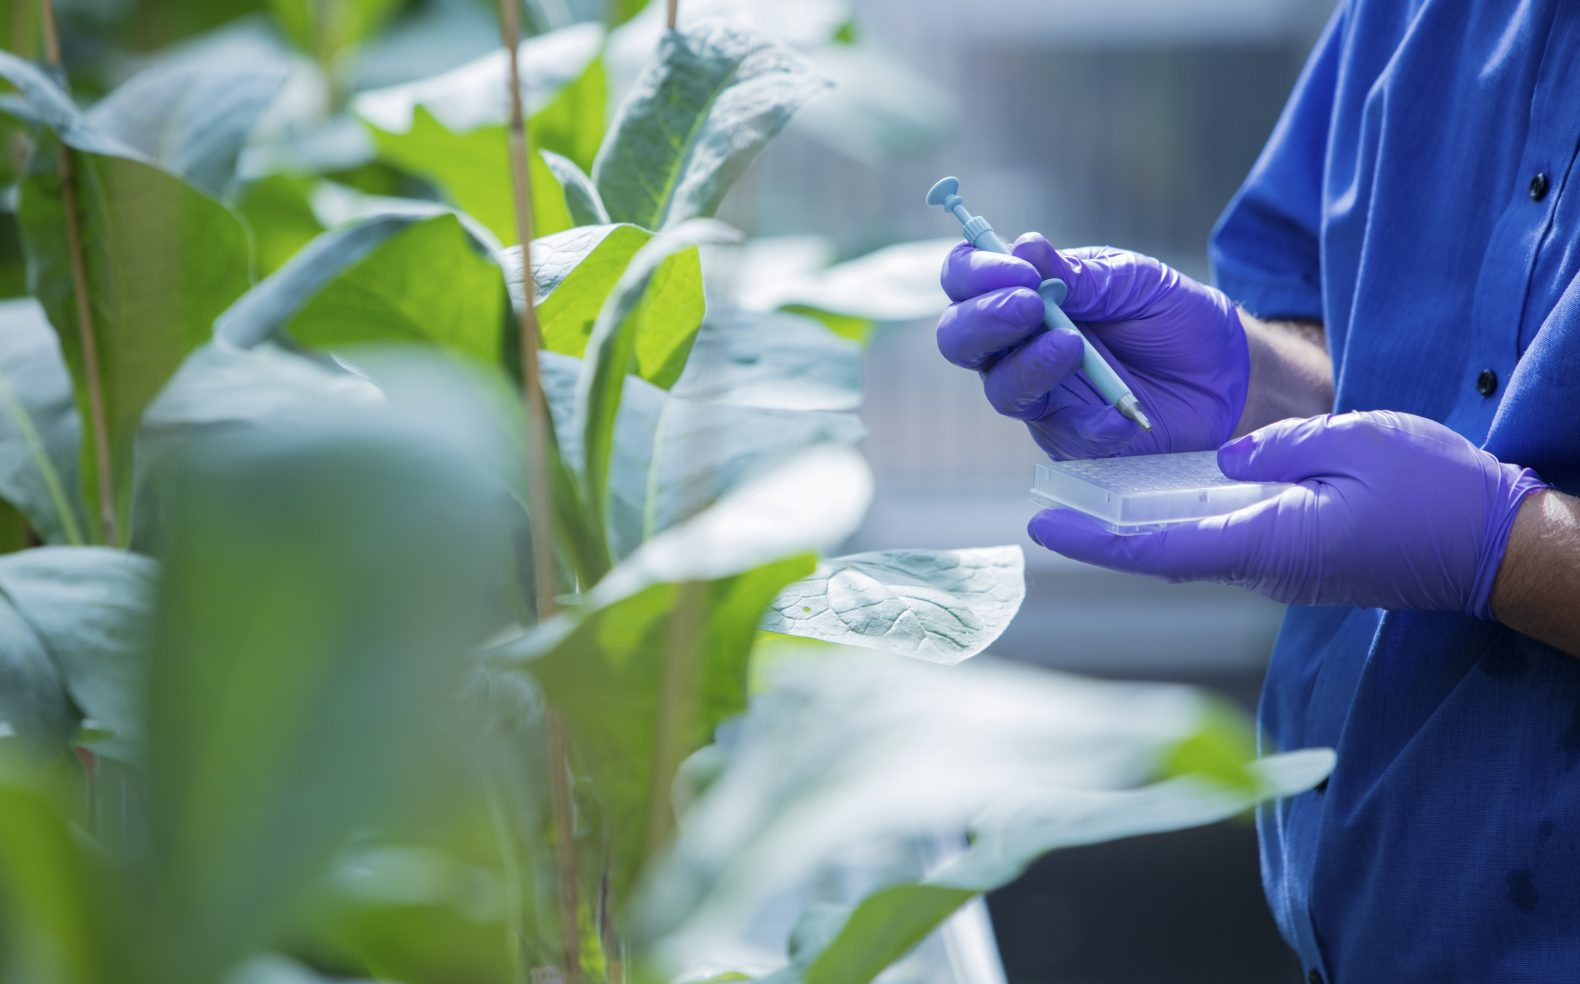 Professional photograph of a scientist taking a sample from a leaf into a small gridded plastic container in a greenhouse